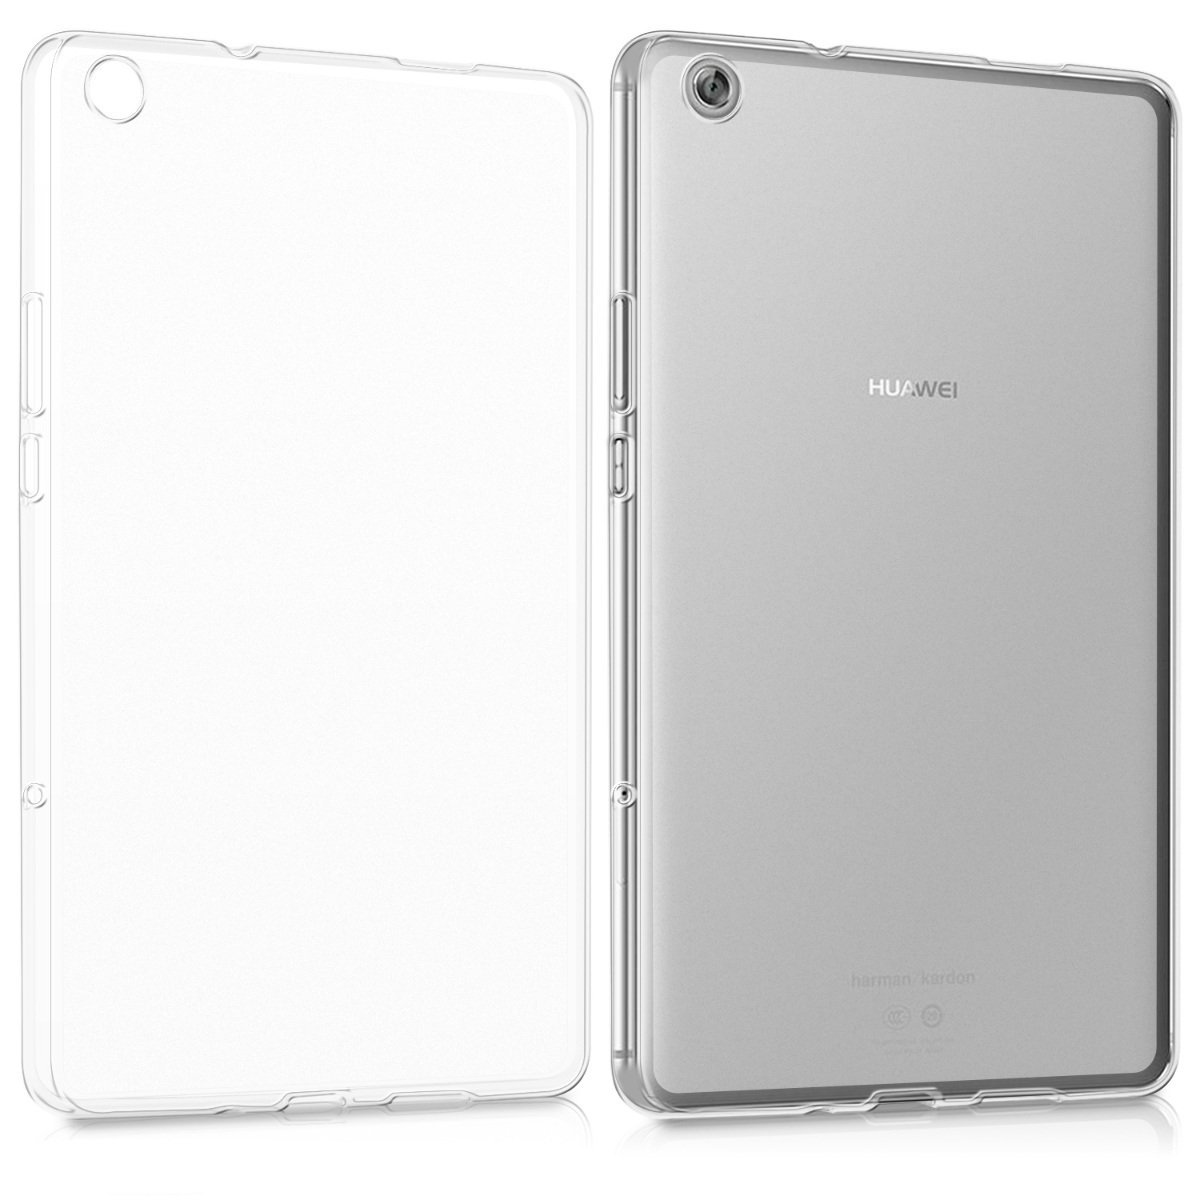 For Huawei MediaPad M3 Lite 8.0 Case, Silicone Case Cover for Huawei Mediapad M3 Youth Lite 8 CPN-W09 CPN-AL00 8 Tablets Glass блузон fake ethics youth 8 16 лет